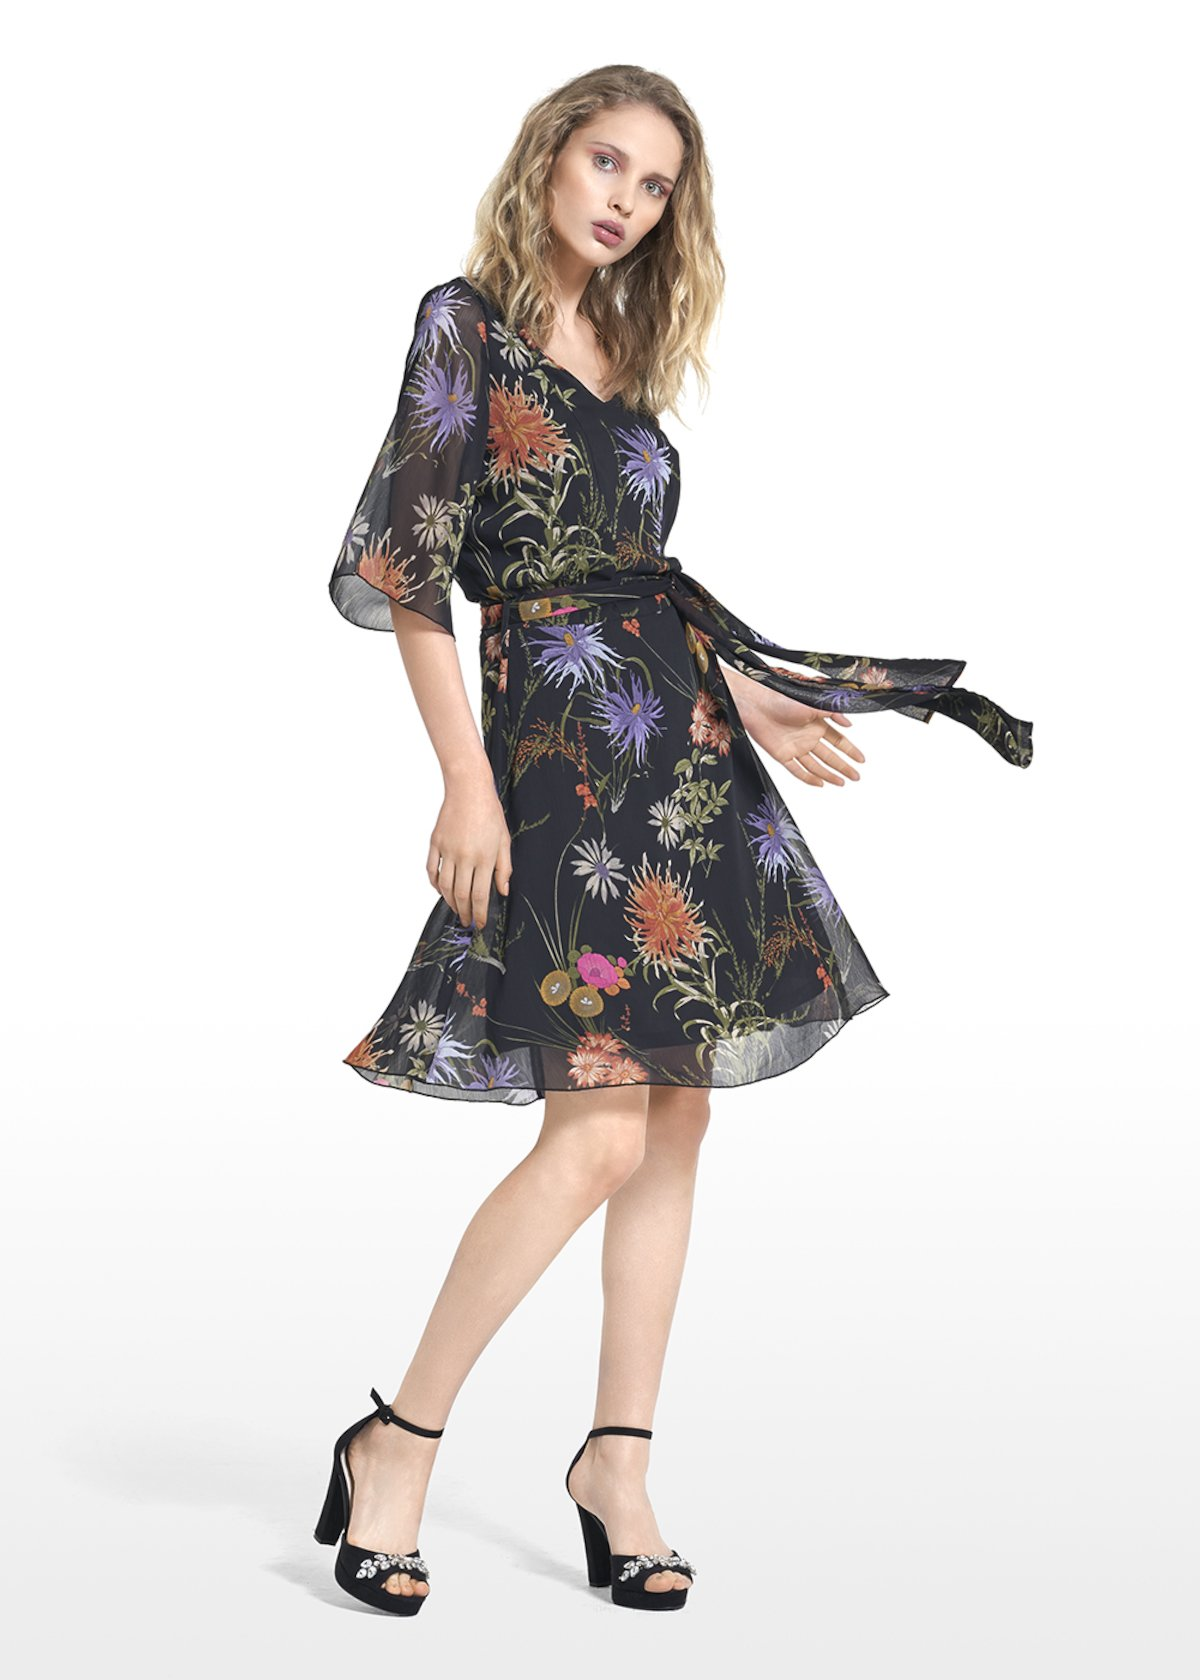 Angel dress in floral print georgette - Black\ Oca\ Fantasia - Woman - Category image